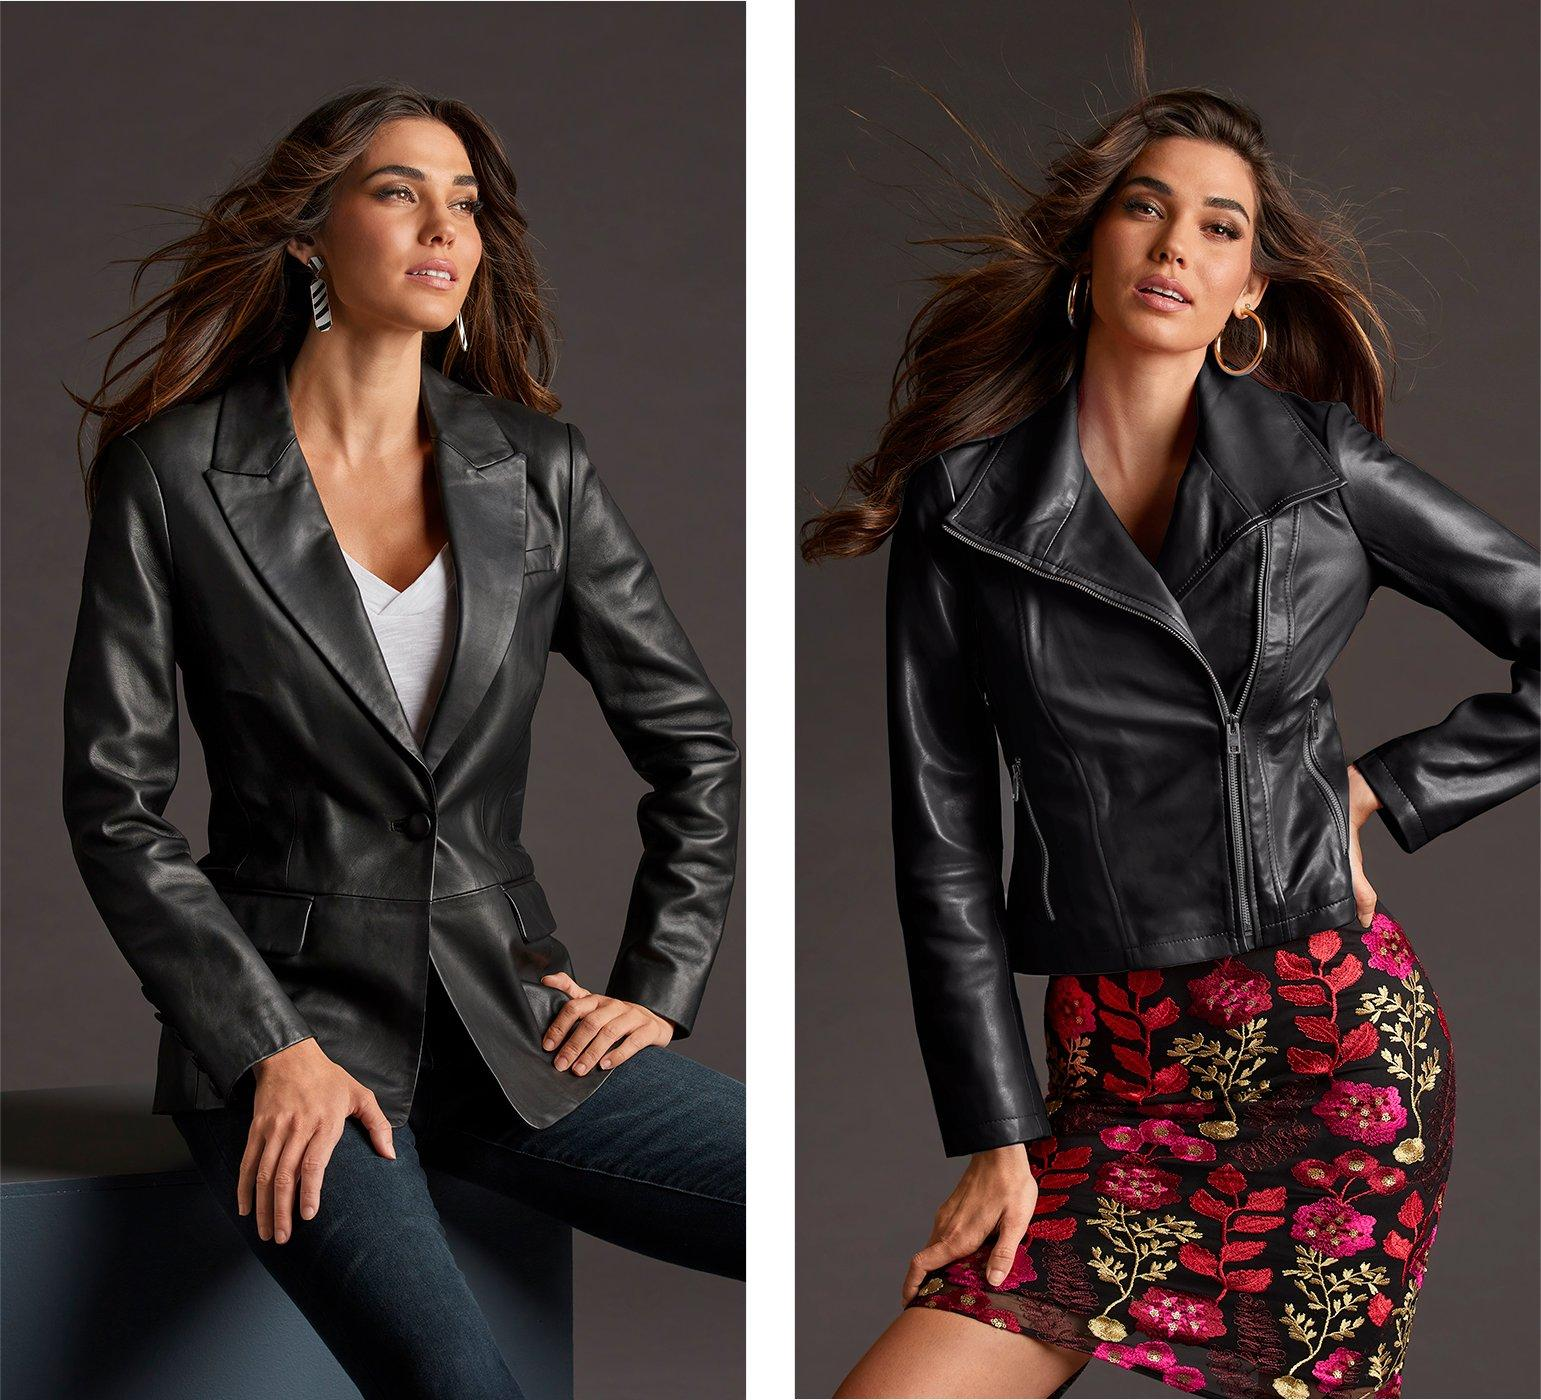 left model wearing a single-button black leather jacket, white v-neck tee, and jeans. right model wearing a collared black leather moto jacket, floral embroidered black mesh dress, and gold hoop earrings.